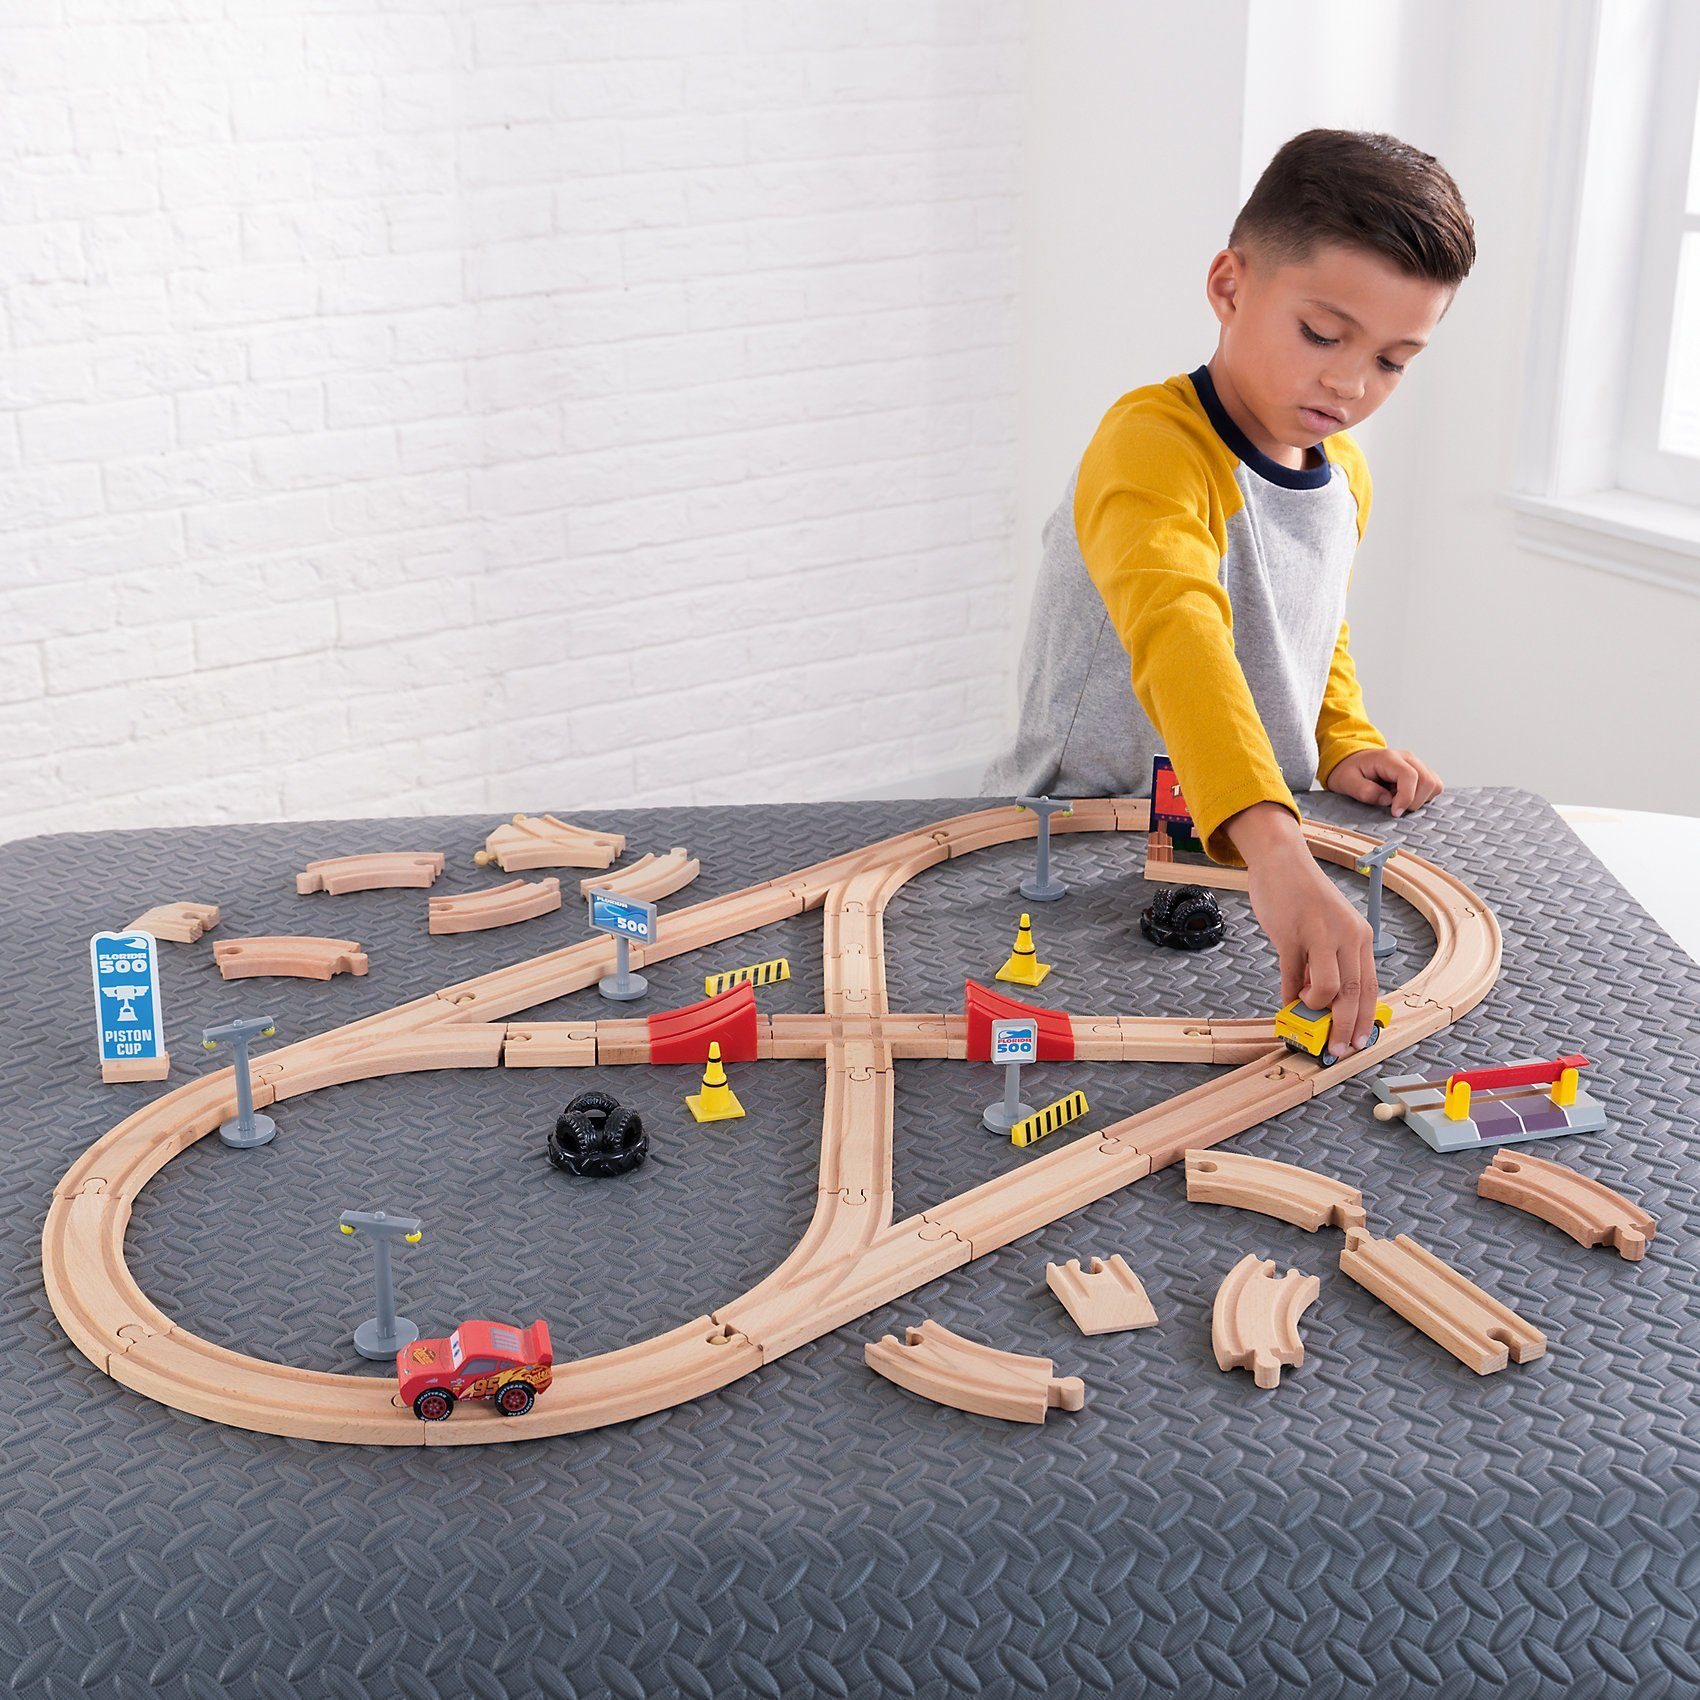 KidKraft Build Your Own Track Set Disney® Pixar Cars 3